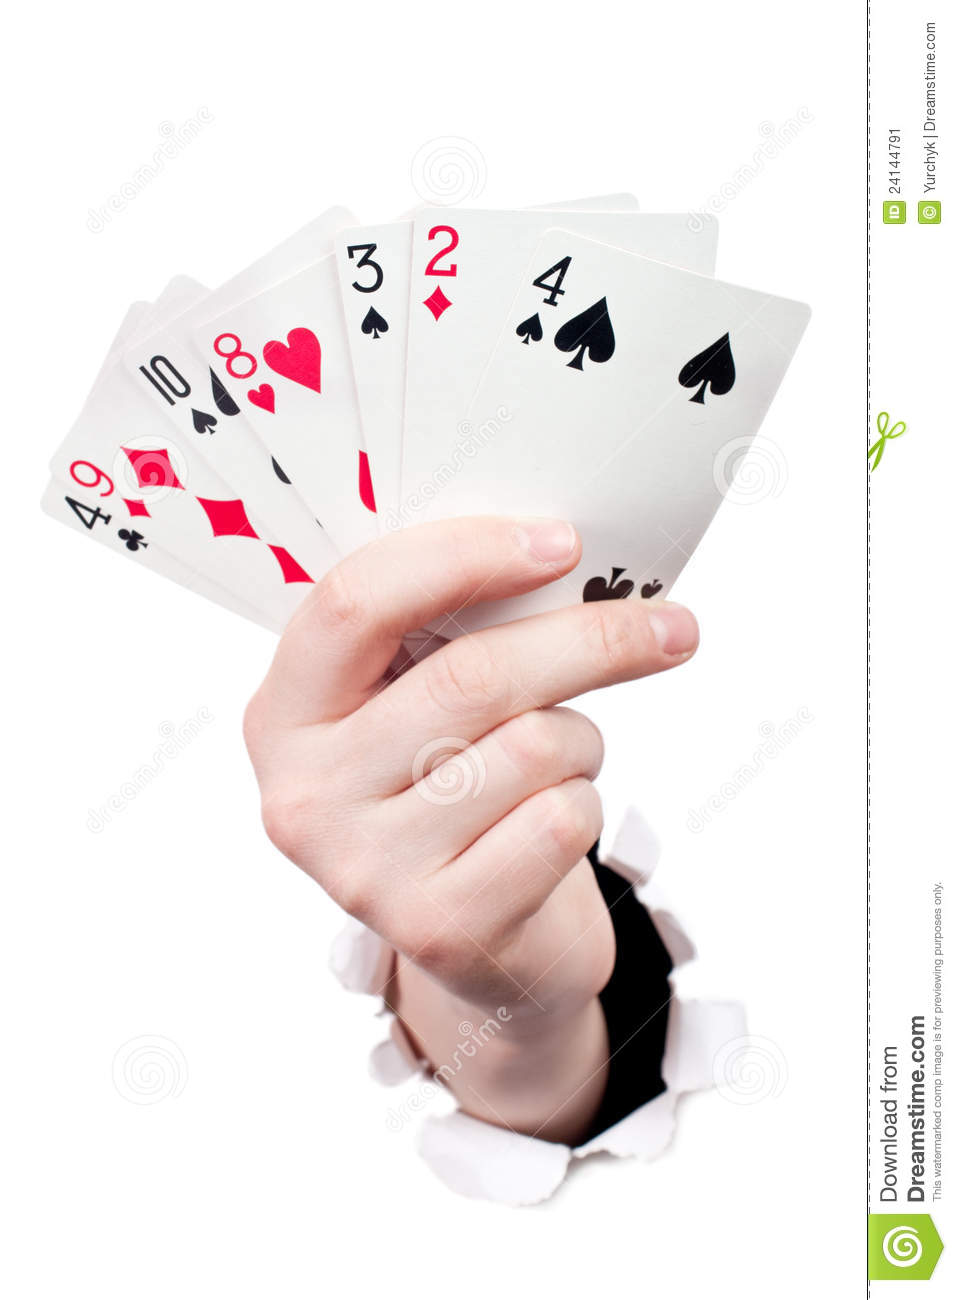 Hand Holding Playing Cards Stock Image - Image: 24144791